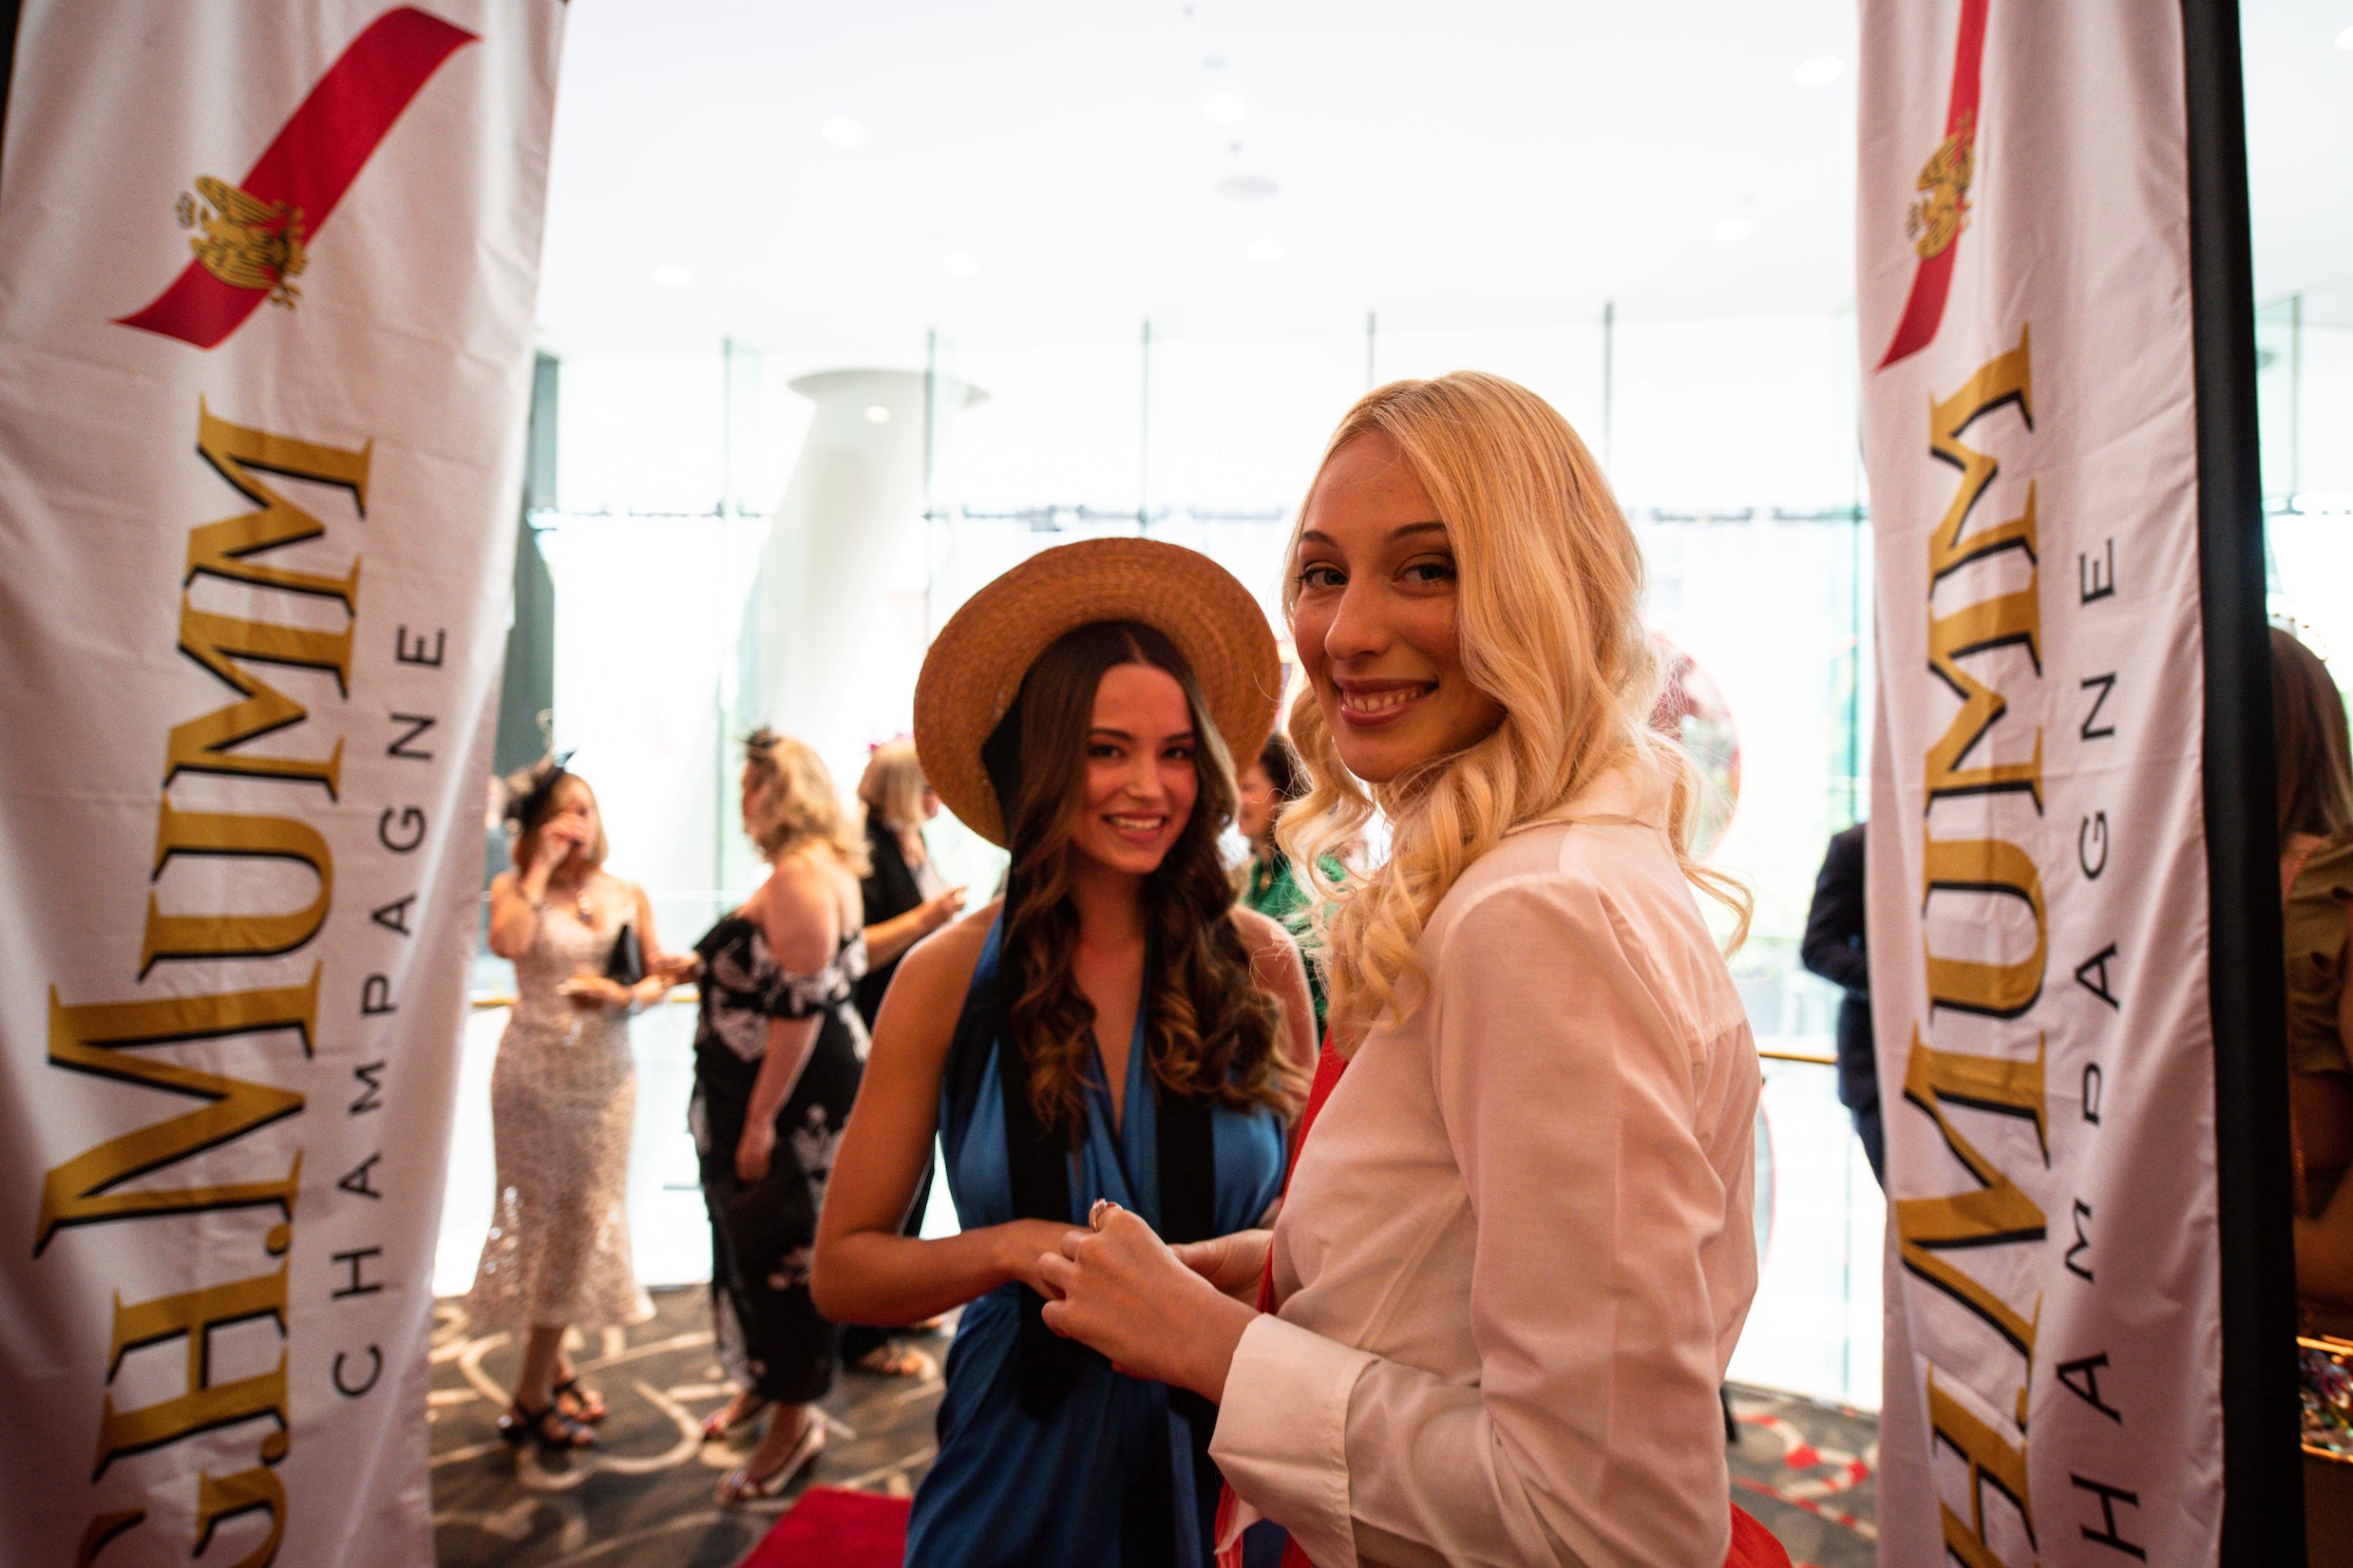 Models at Melbourne Cup event smile at camera wearing Robe resort wear